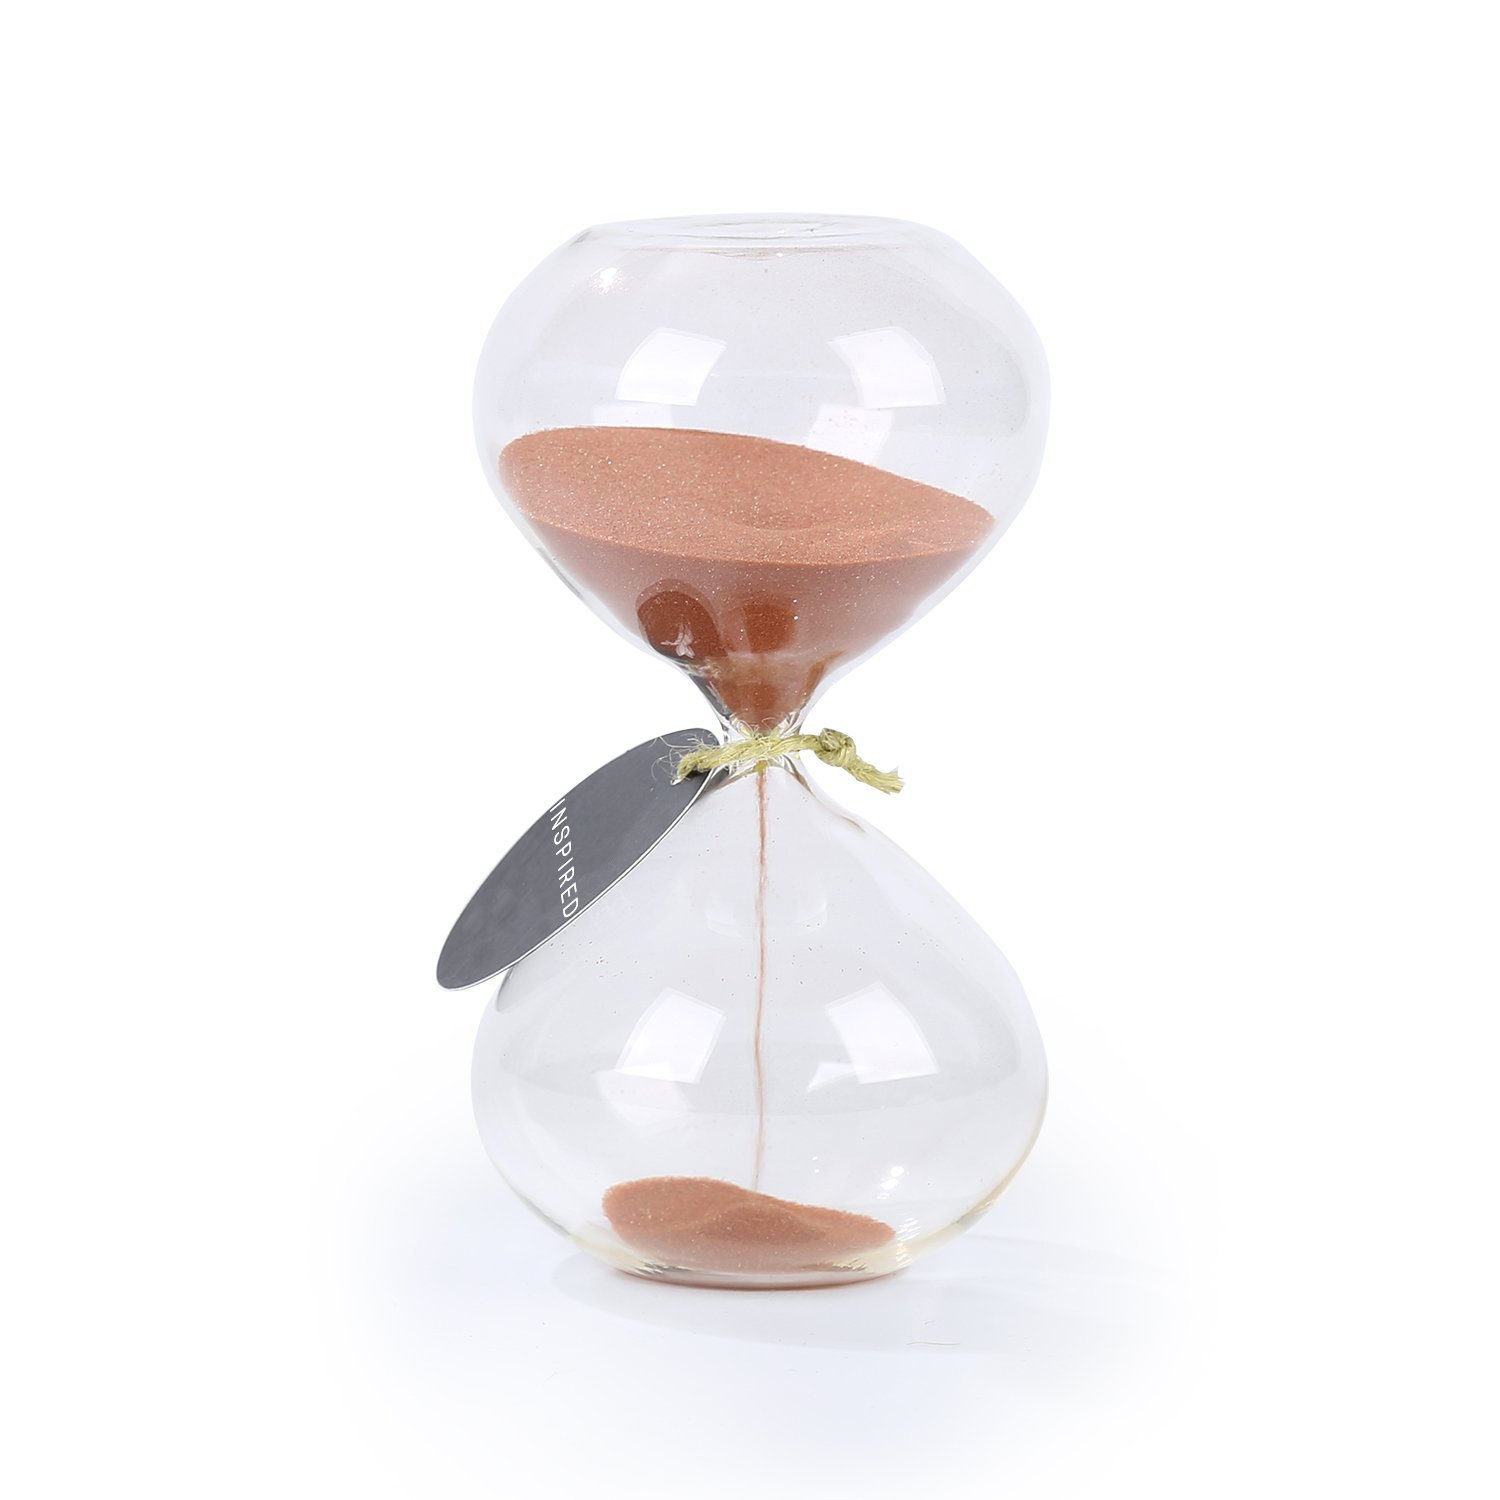 SWISSELITE Biloba 4.5 Inch Puff Sand Timer/Hourglass Sand Timer 5 Minutes - Copper Color Sand - Inspired Glass/Home, Desk, Office Decor